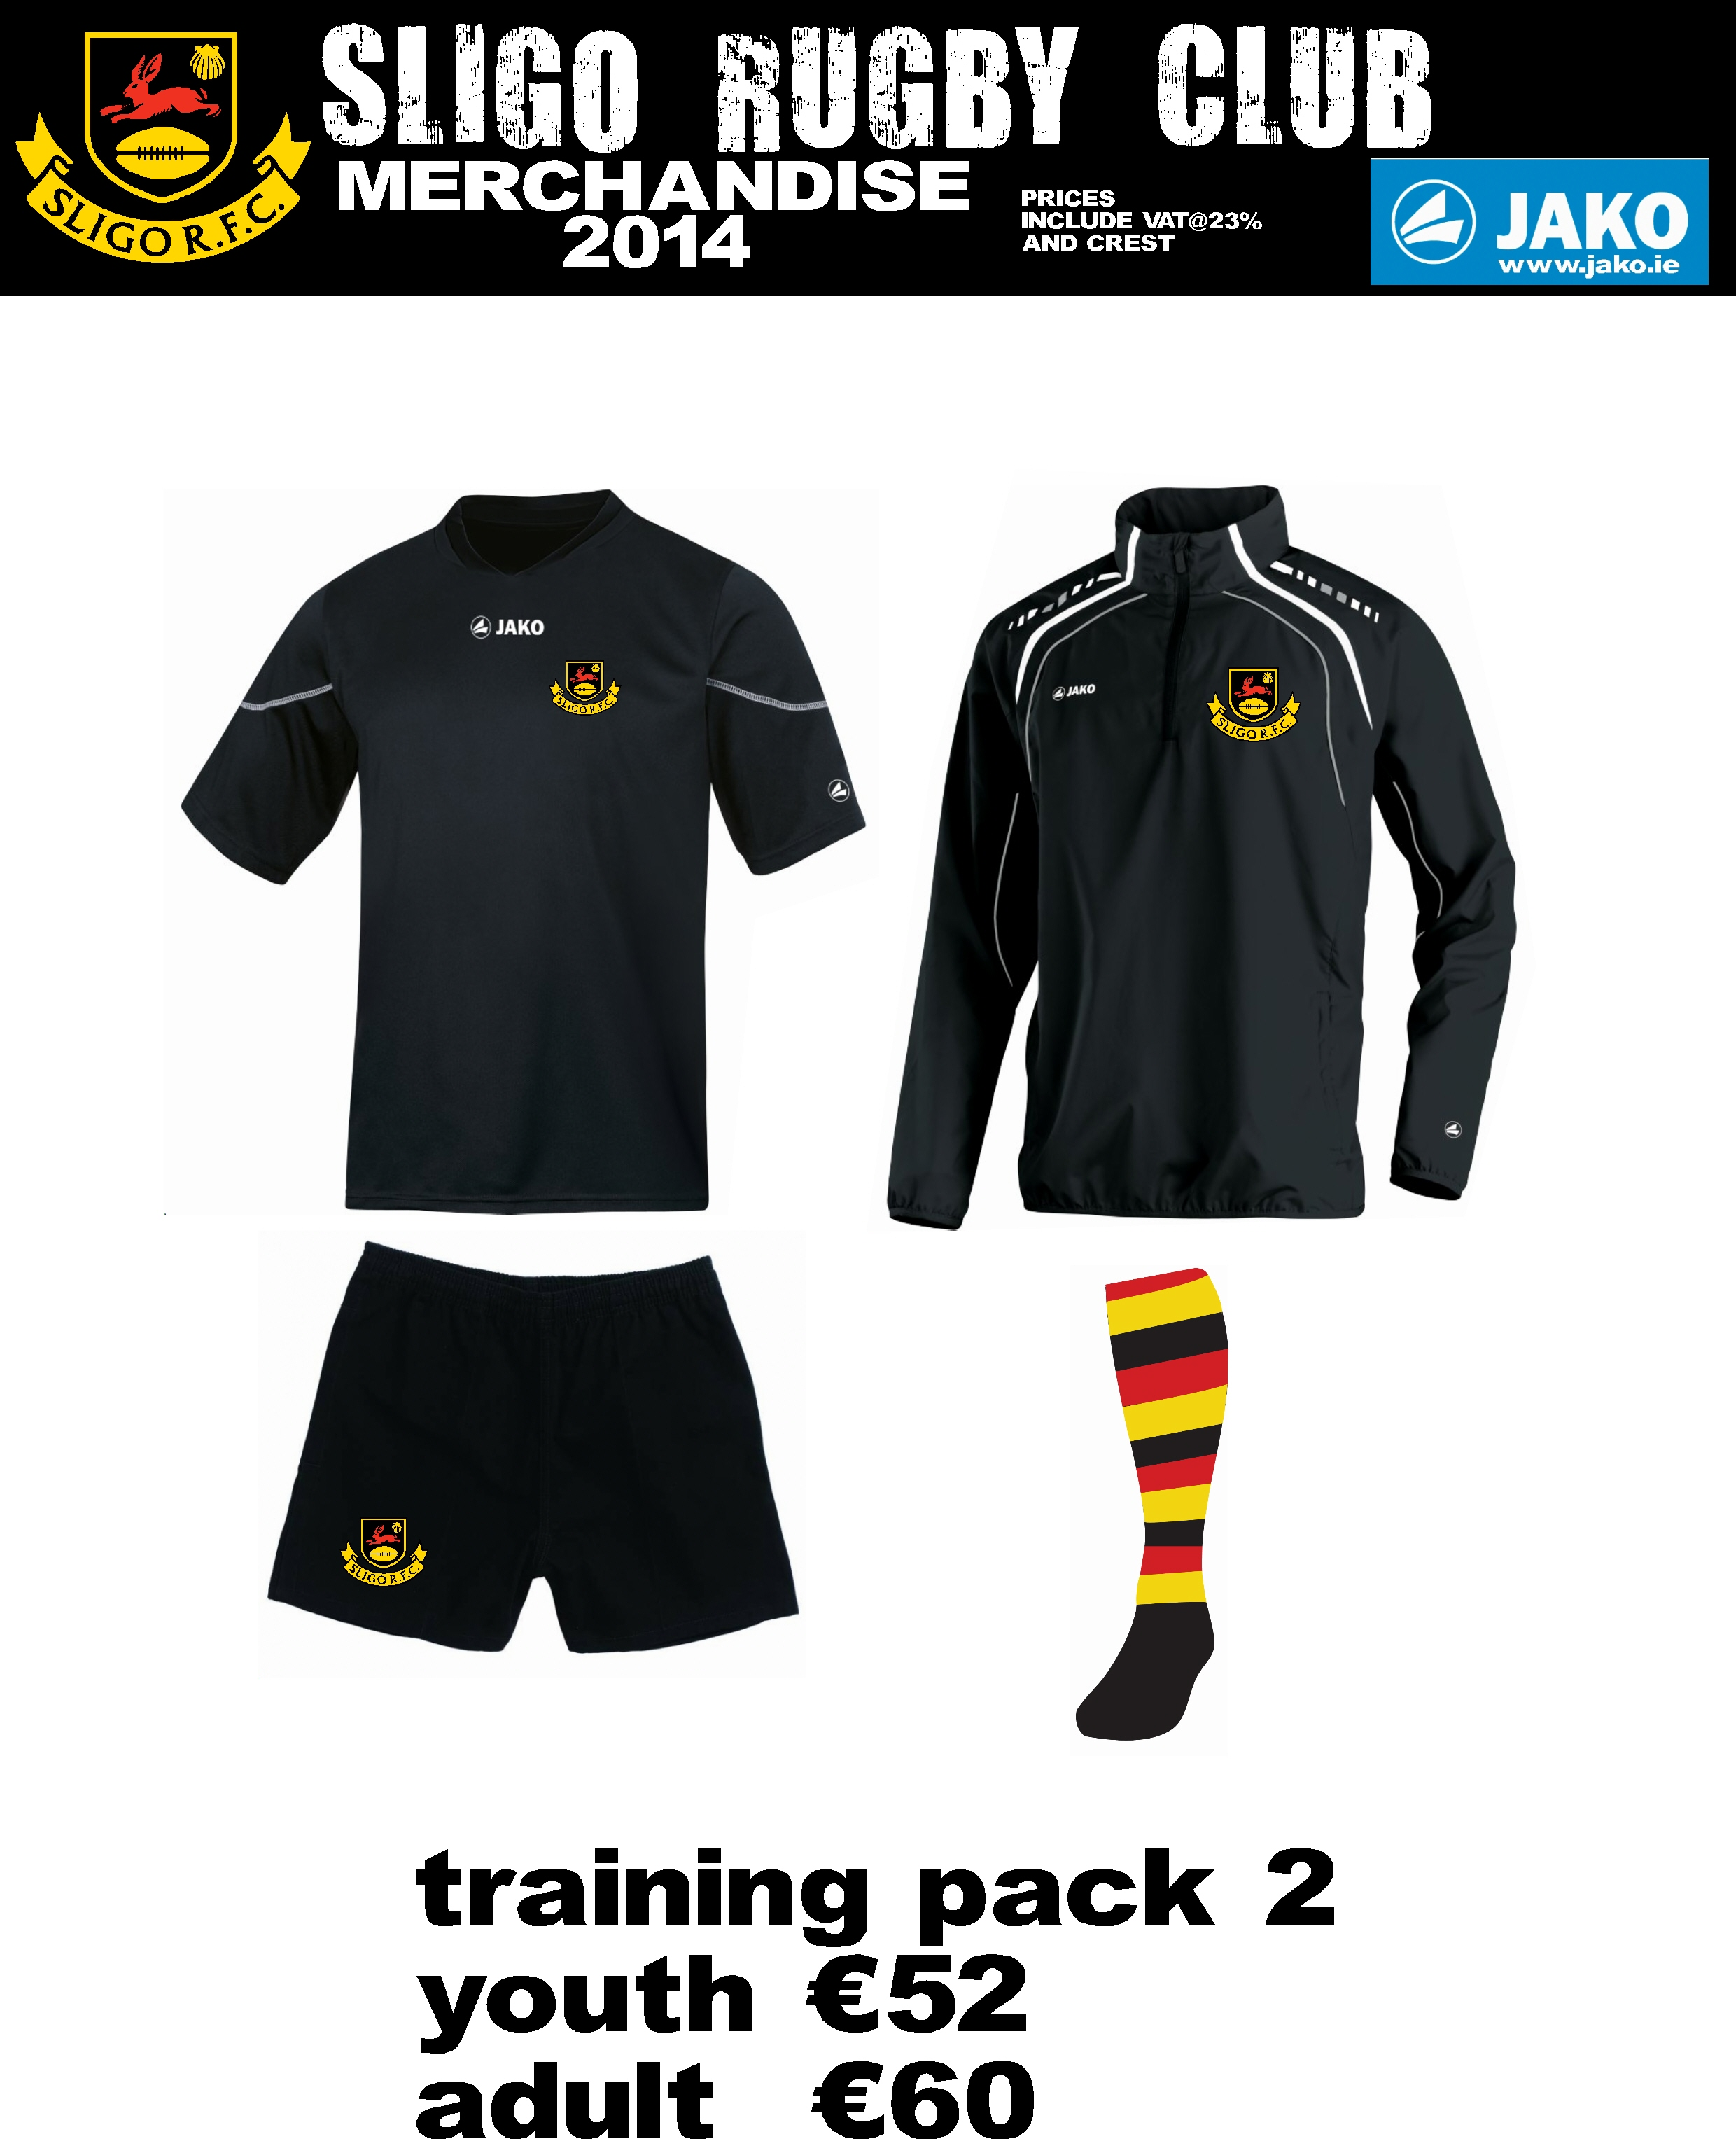 e5d683fd327df Shop or browse HERE now for Sligo RFC Kit online with Jako Sport at their  Sligo Rugby Club page on their online store.